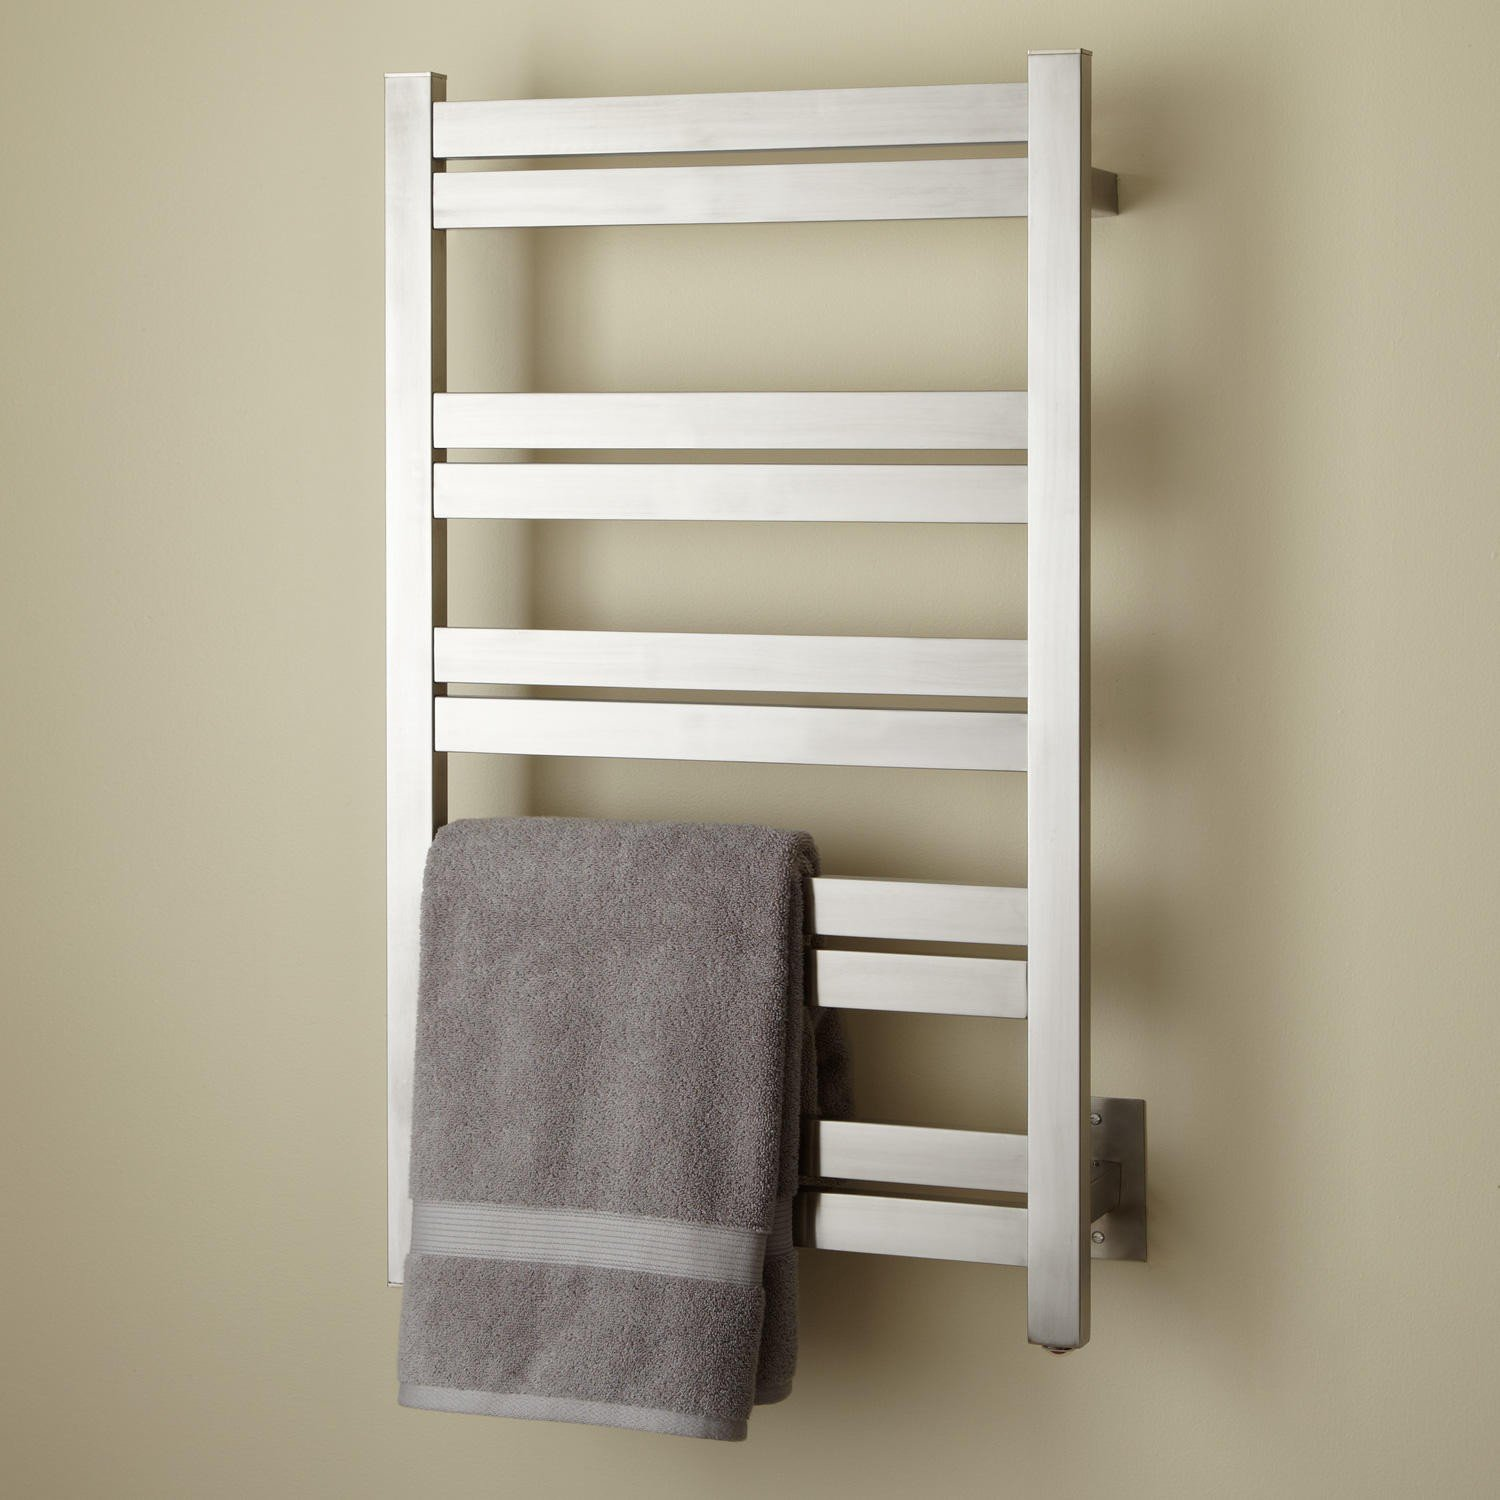 Naiture 20'' Extra Tall Hardwired Towel Warmer In Brushed Stainless Steel Finish